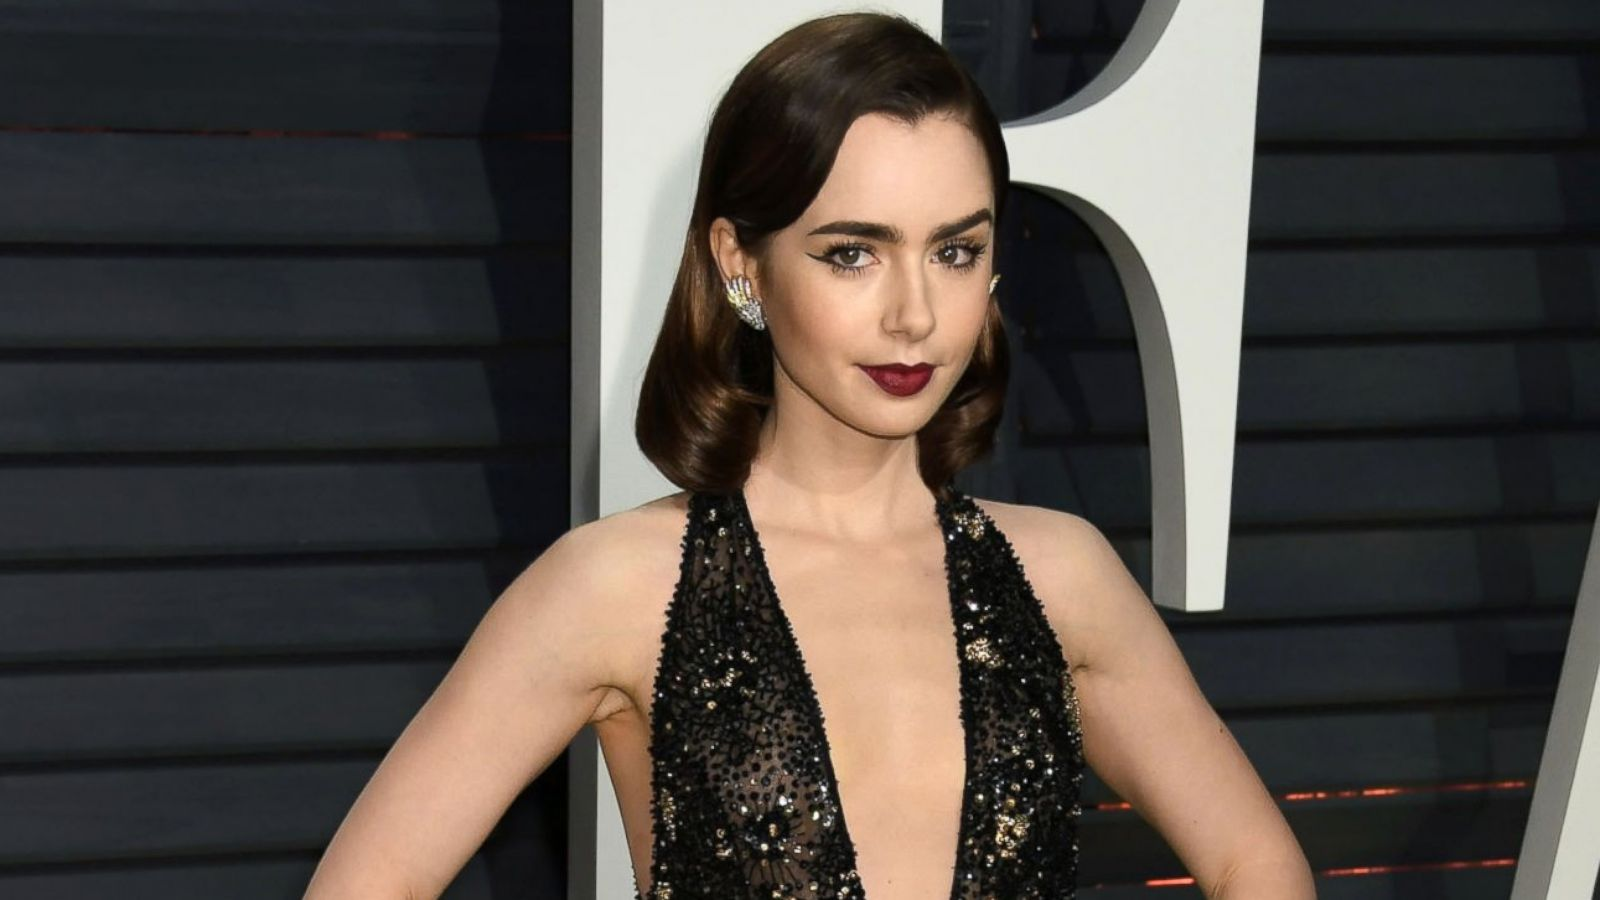 Lily collins 6493 nudes (65 image)